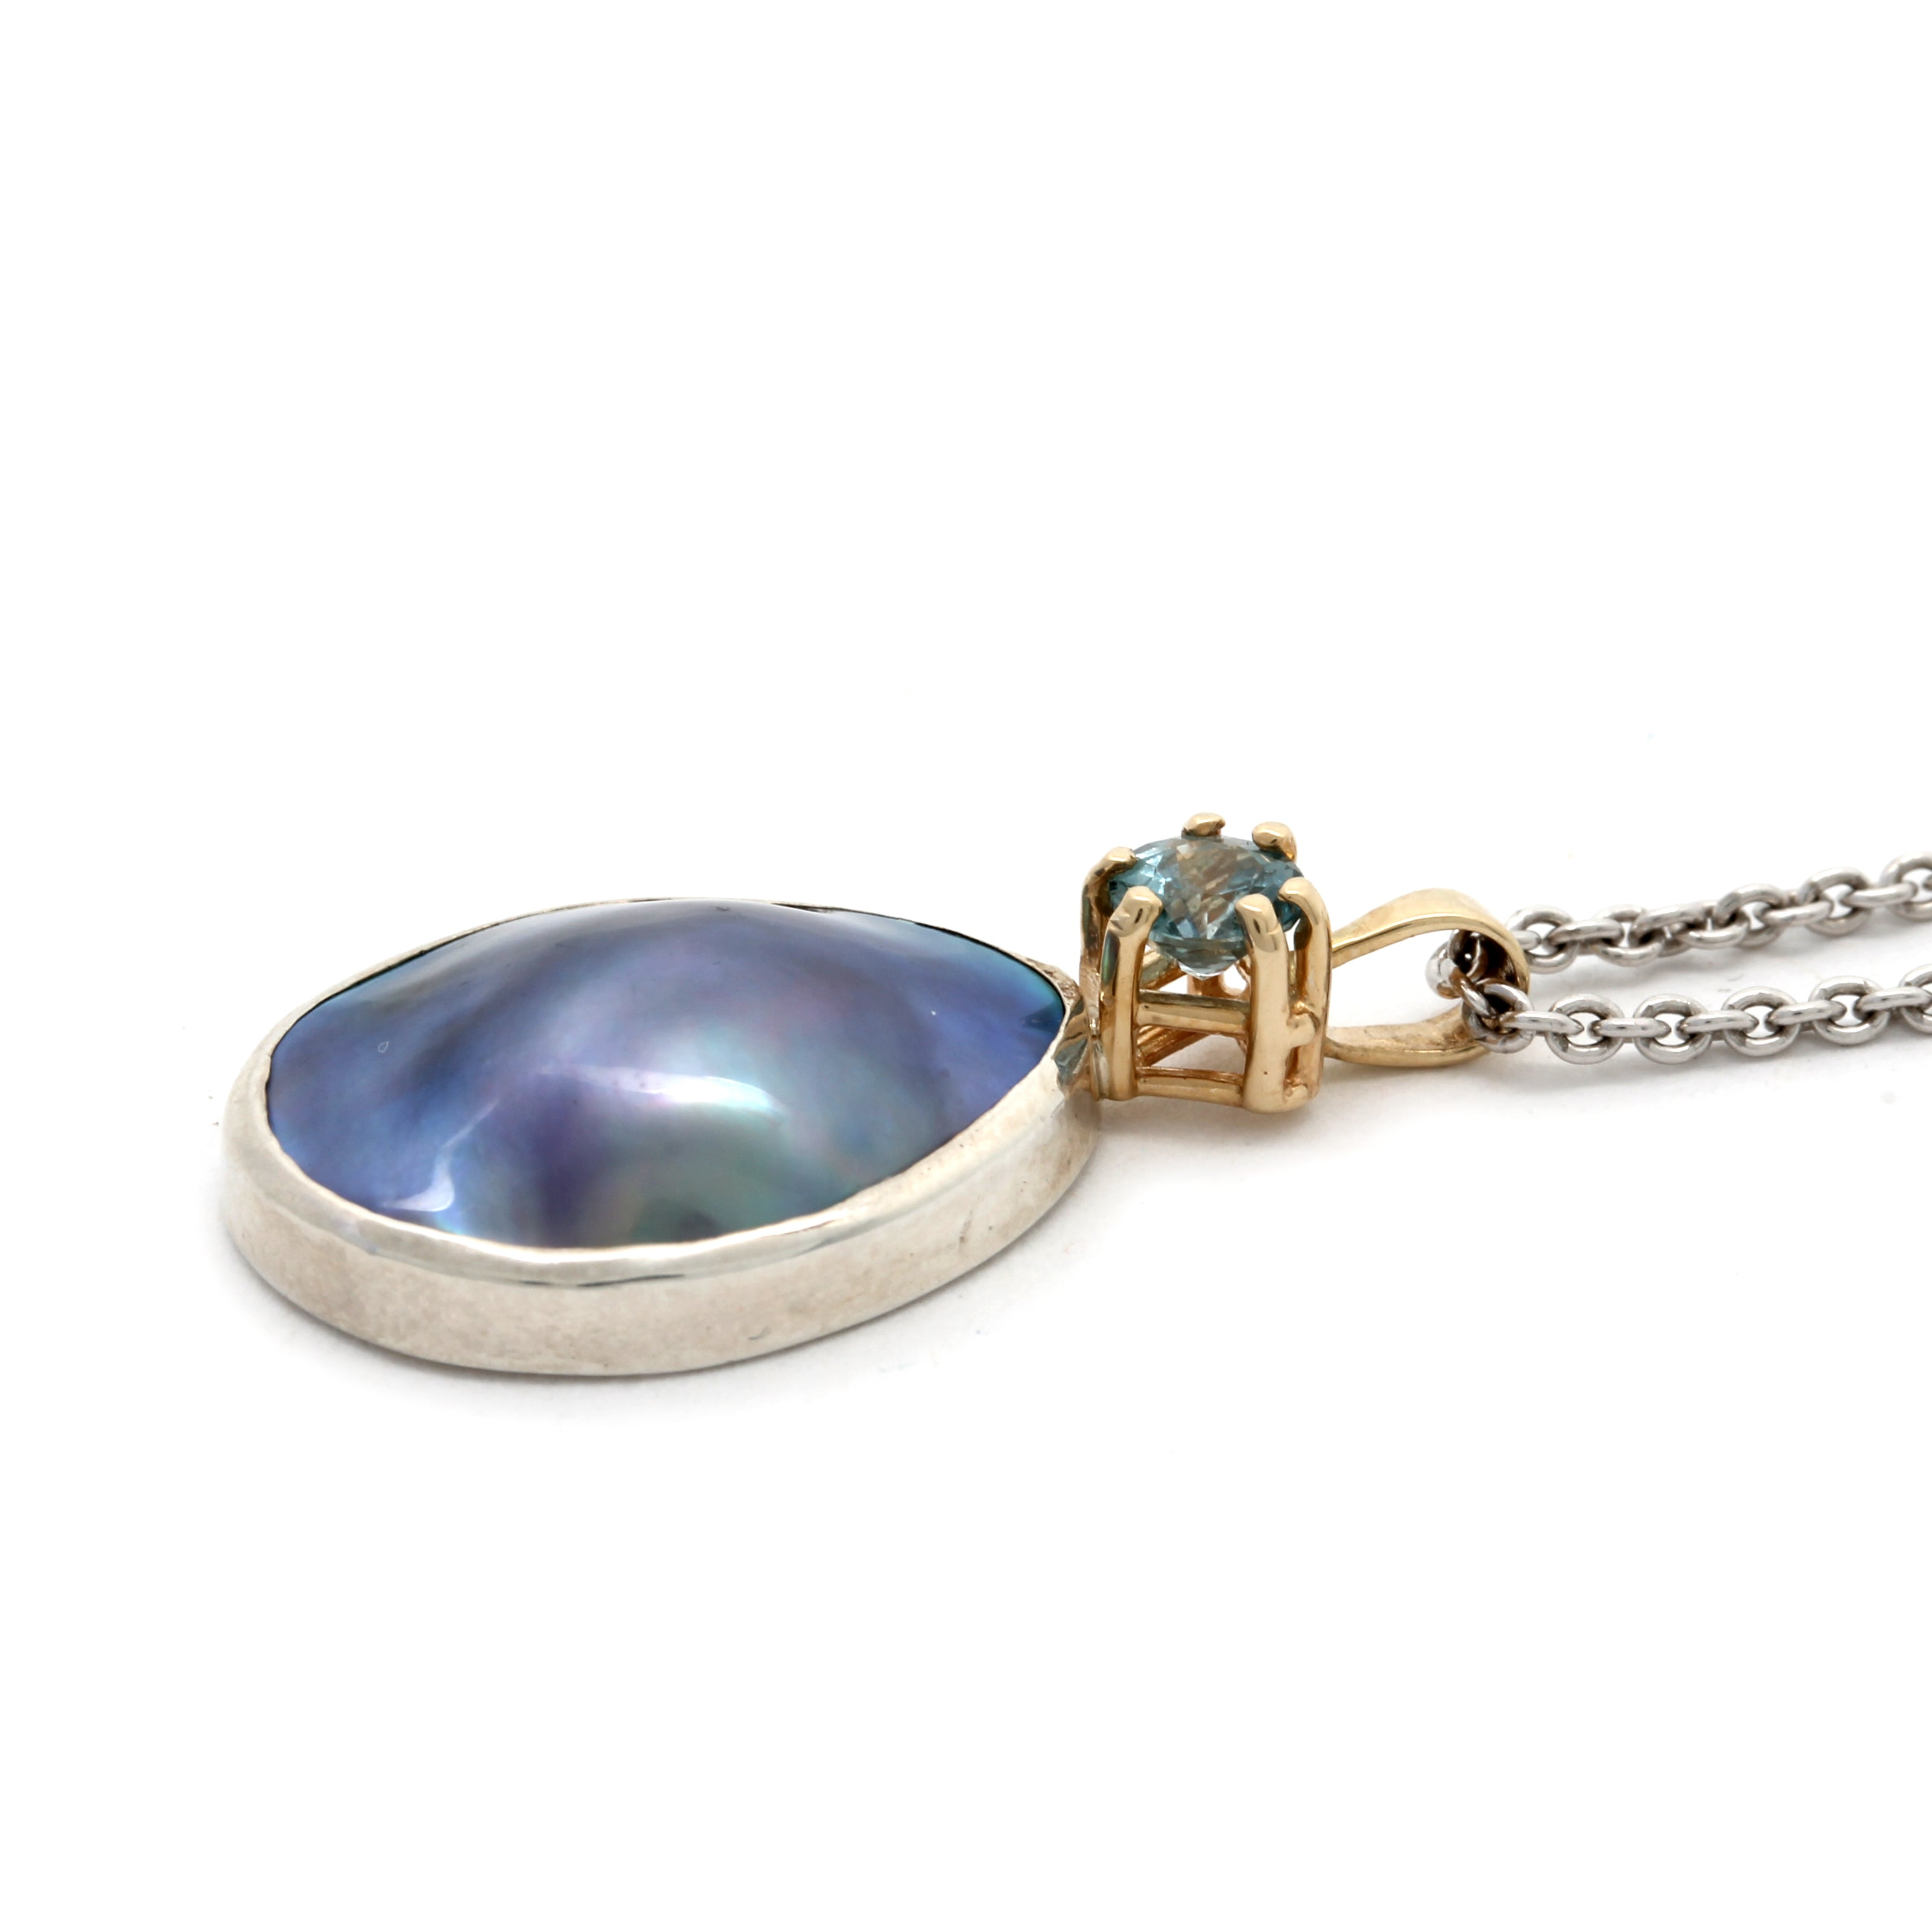 NEW 14K Yellow Gold Pendant with Amazing Cortez Mabe Pearl